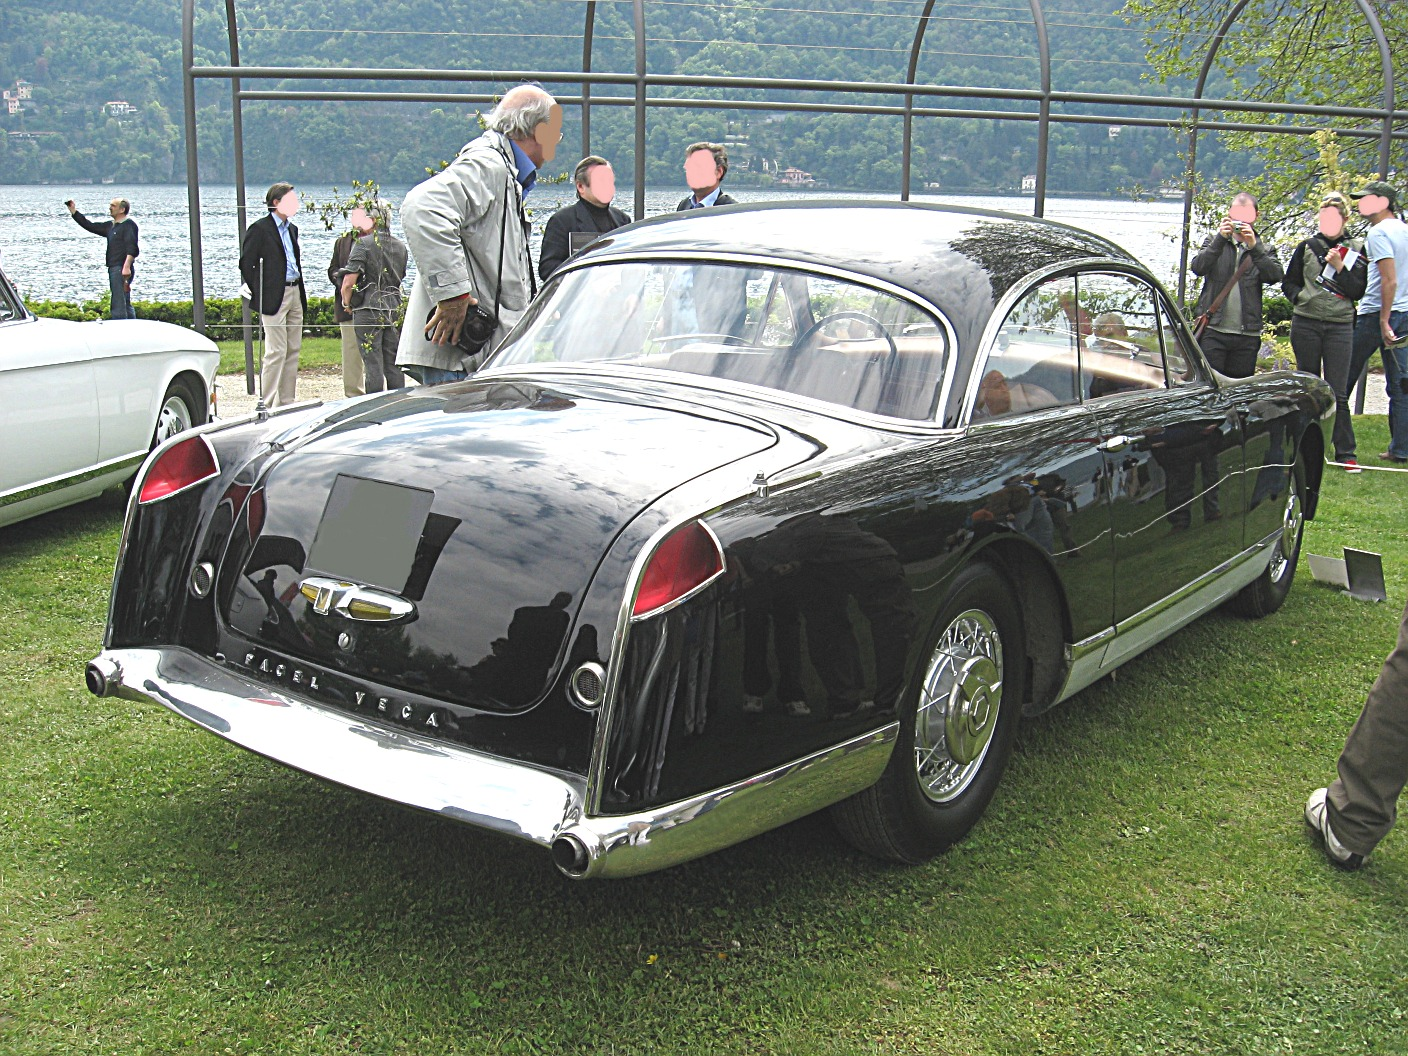 facel-vega_fv_rear-view.jpg